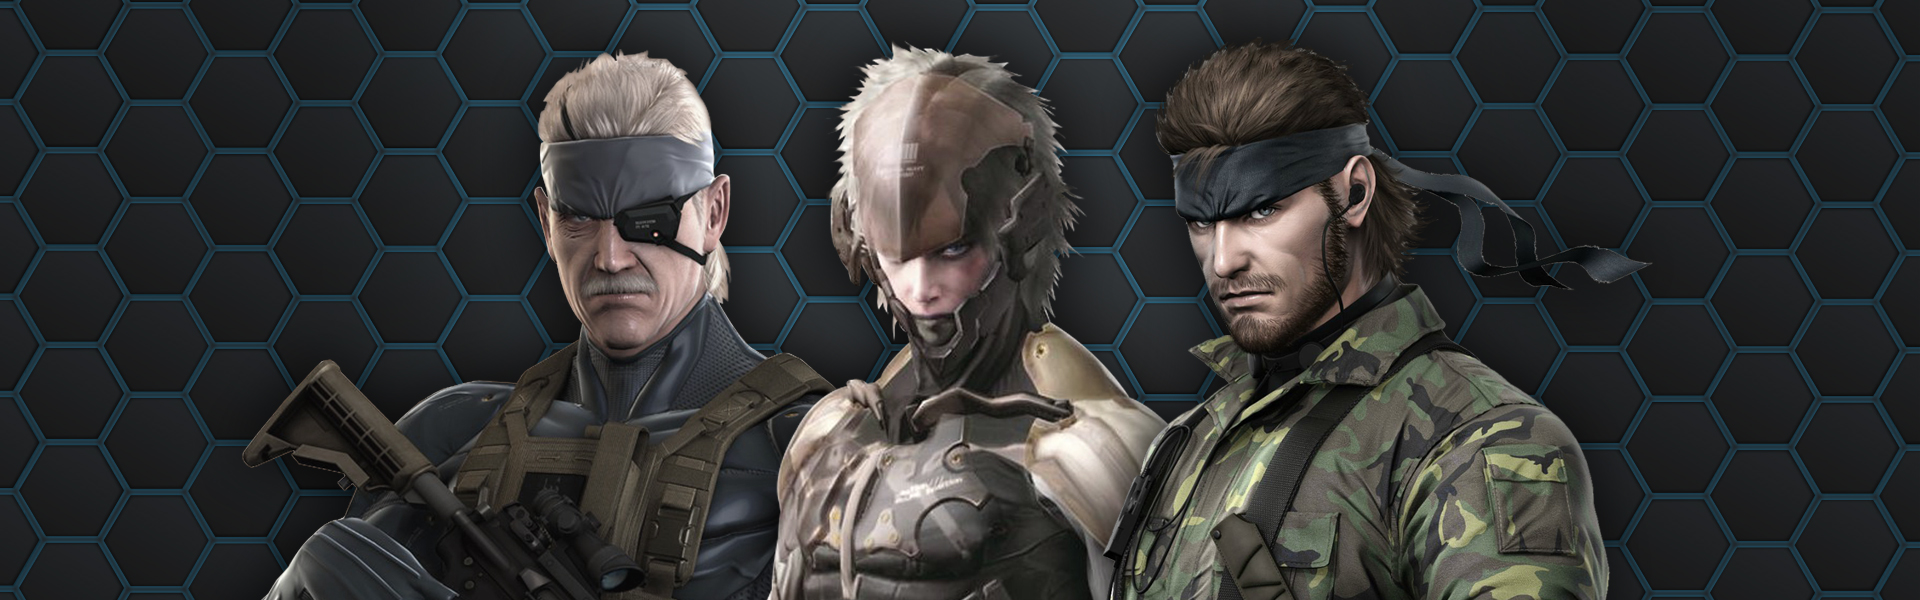 MPU_Ep9_Metal_Gear_1920x600